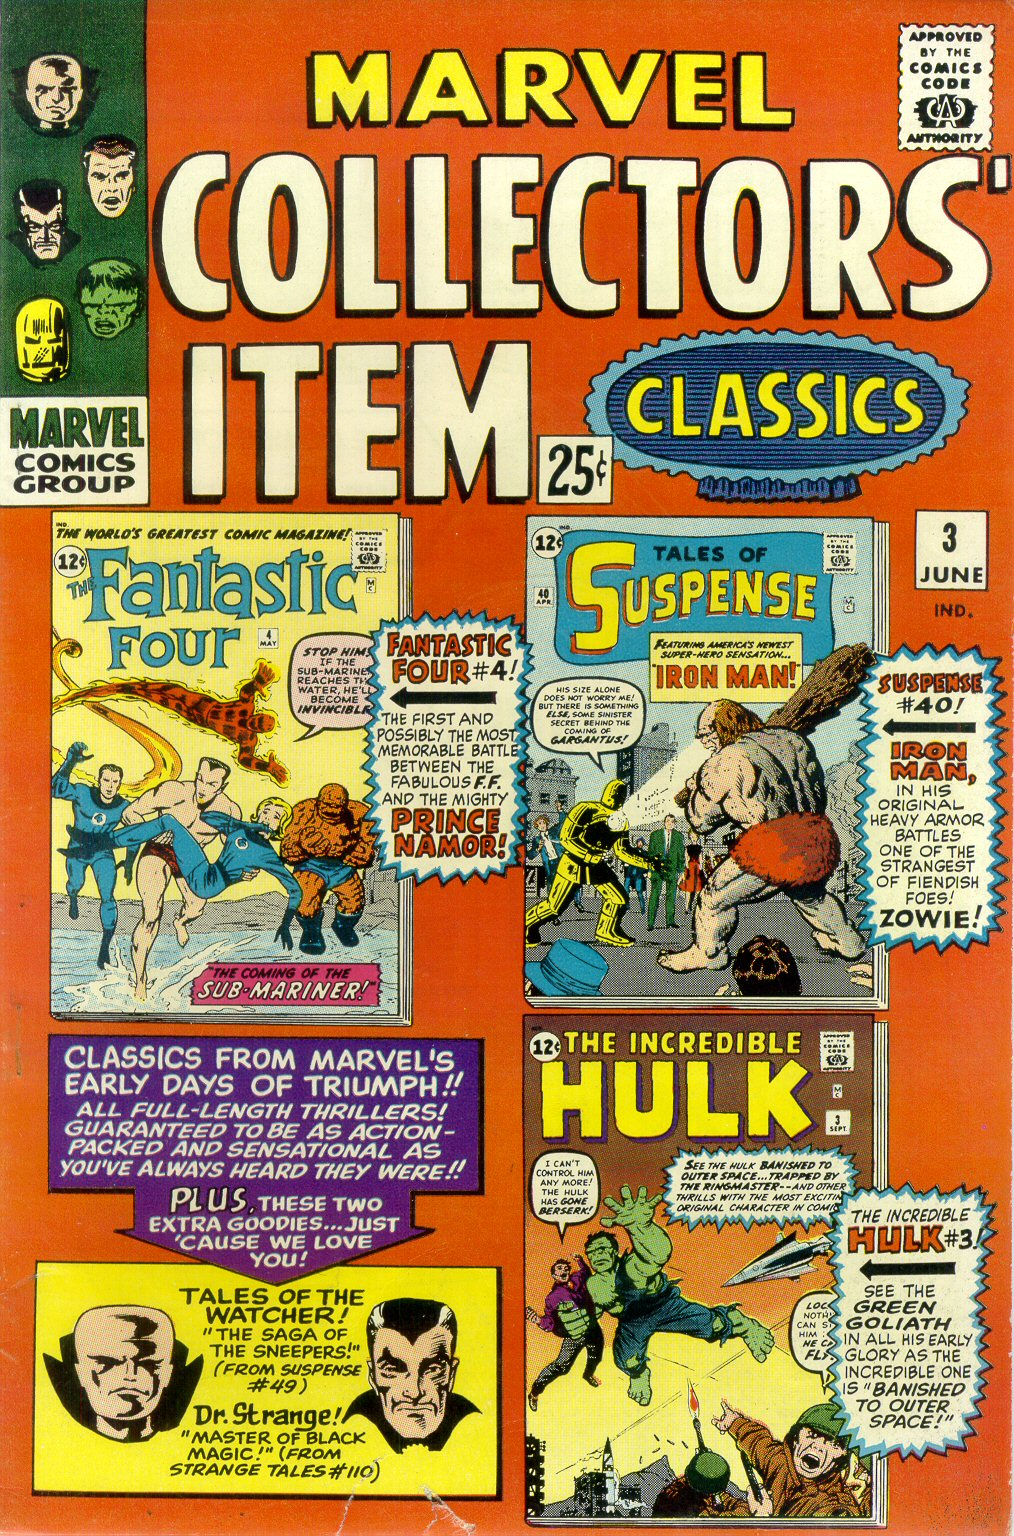 Marvel Collectors Item Classics 3 Page 1